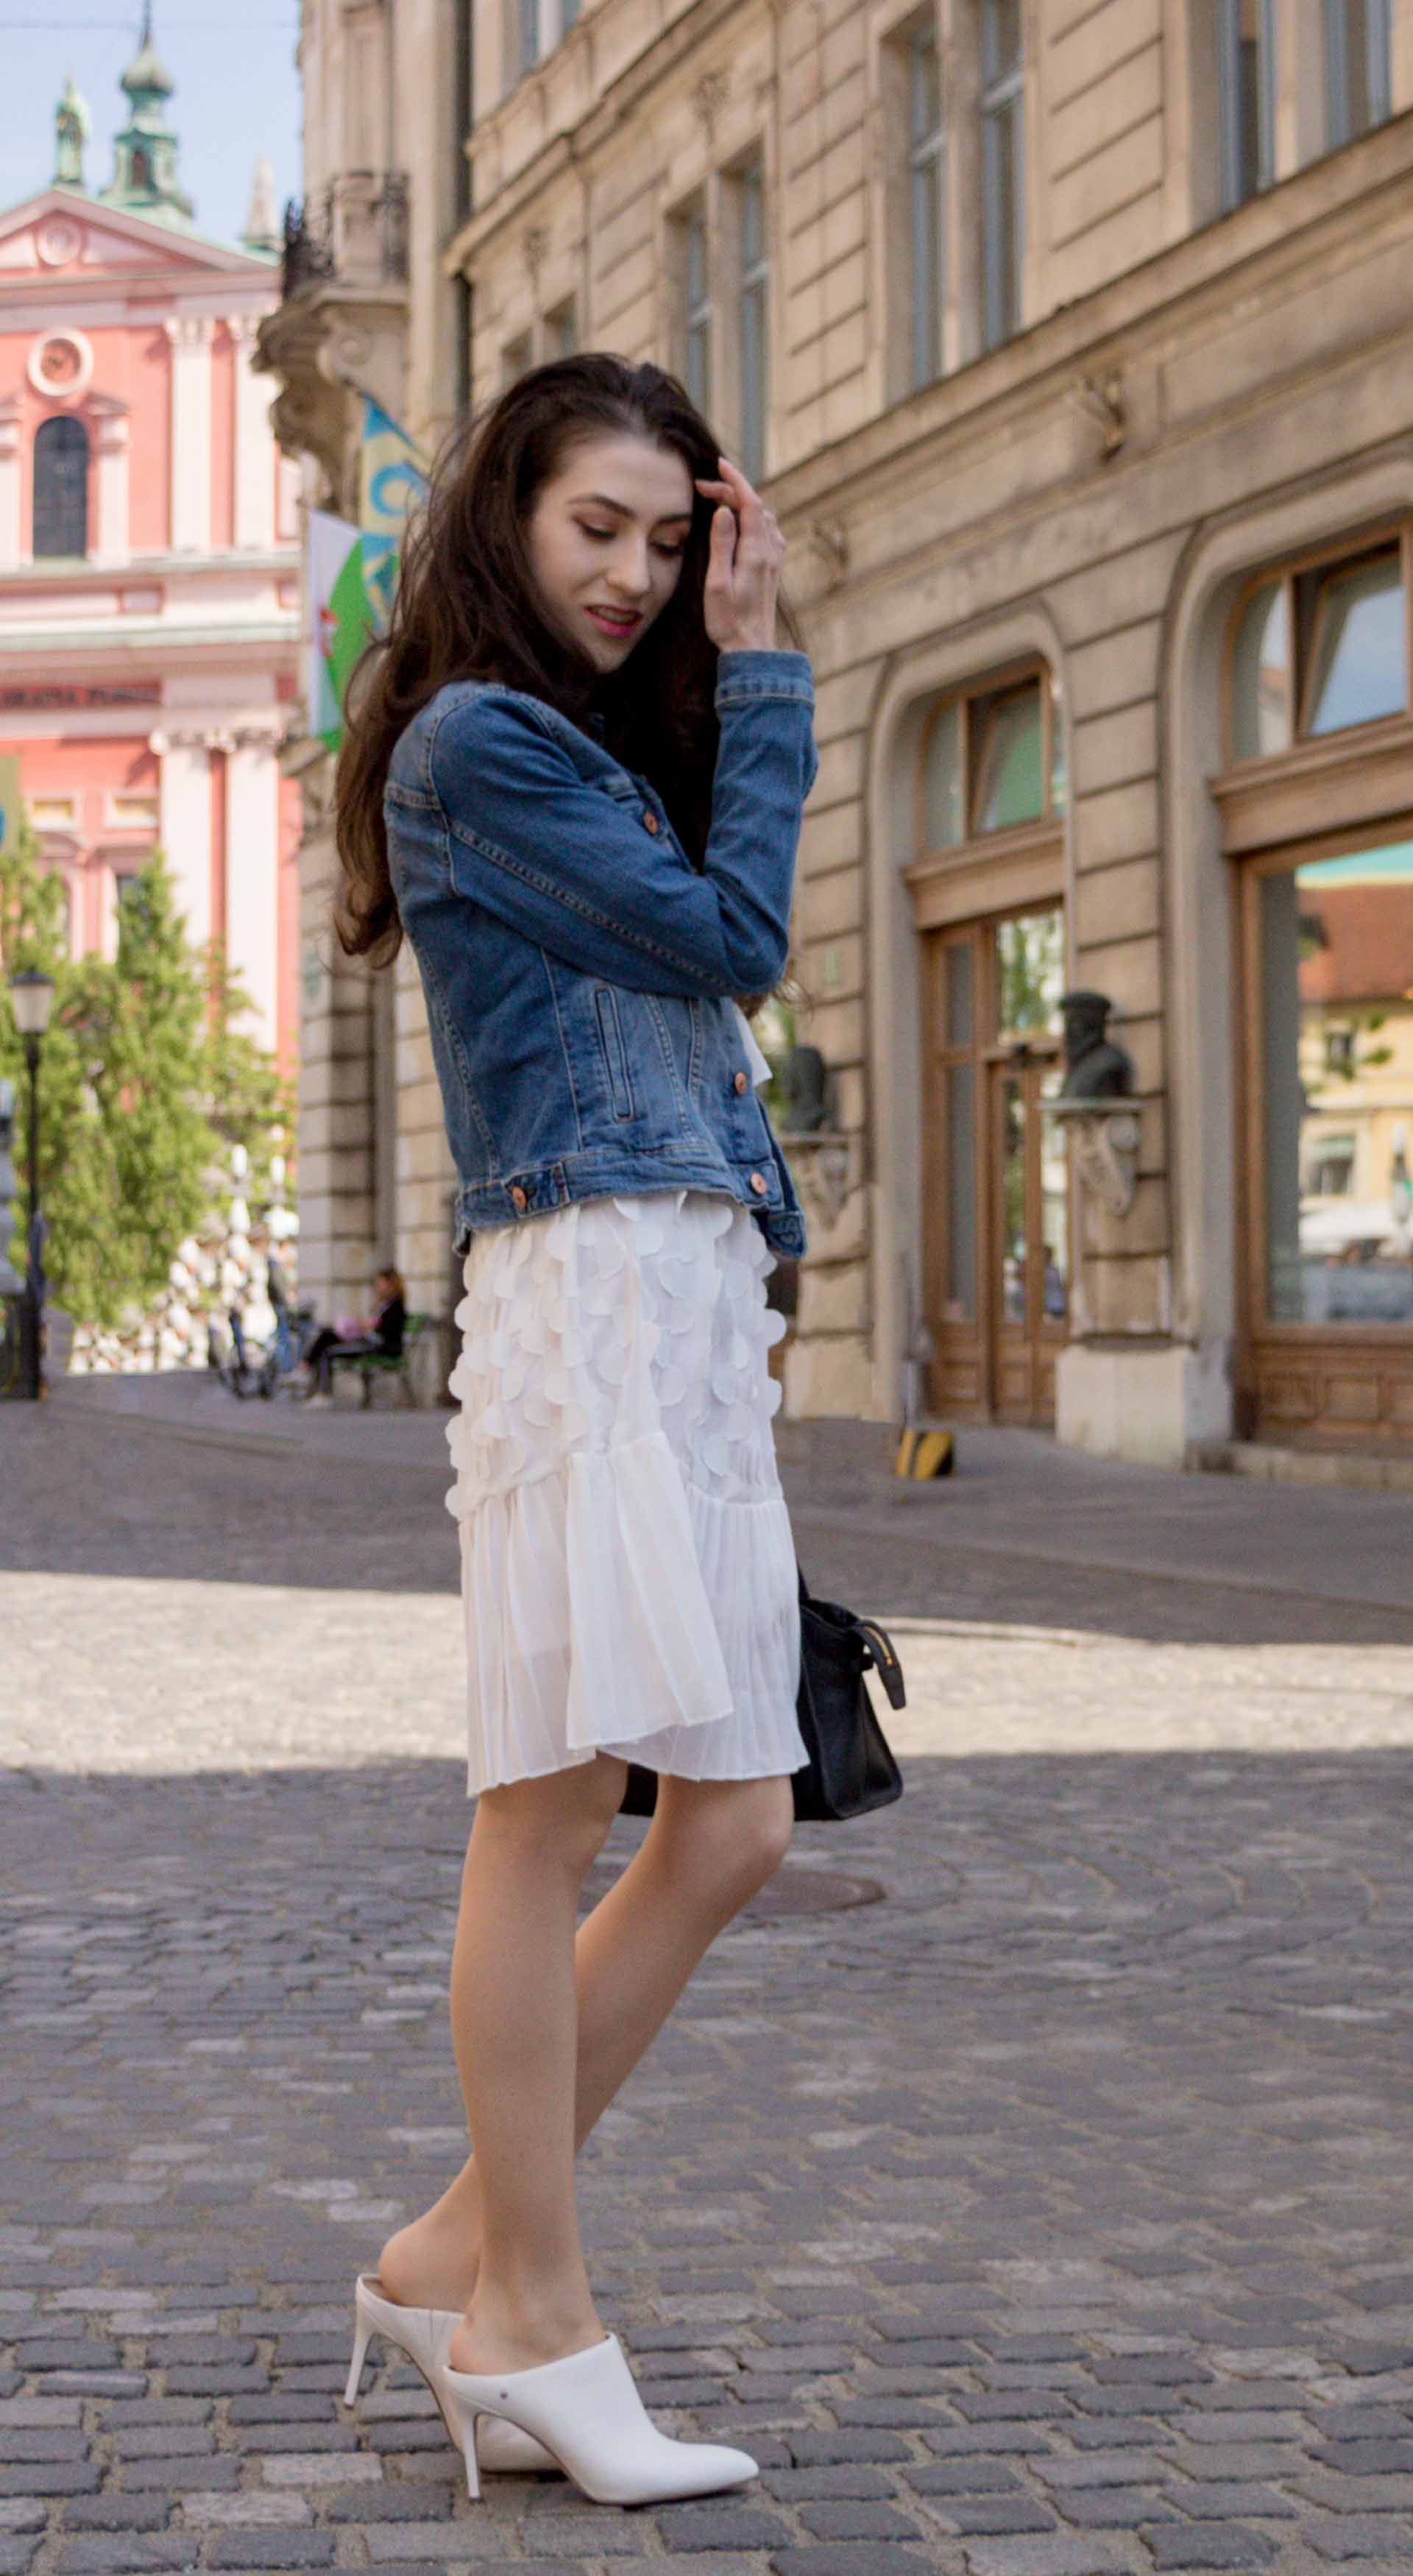 Veronika Lipar Fashion Editor of Brunette from Wall Street dressed in H&M blue denim jacket, Storets white pleated short dress, white mules and Adam Selman x Le Specs white cat eye Lolita sunglasses, black small bag standing on the street